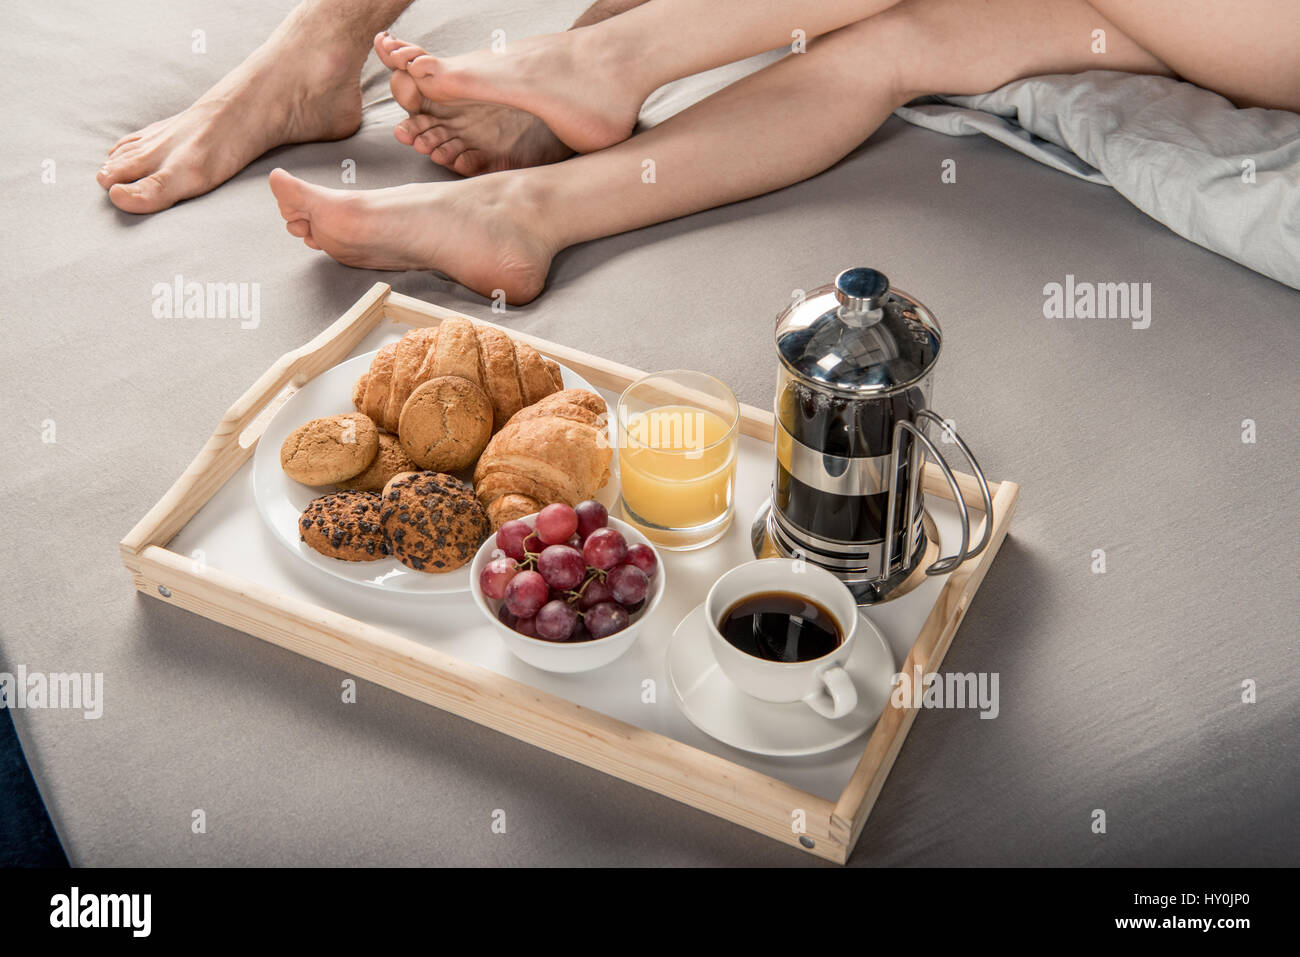 Partial view of male and female legs and breakfast on bad tray - Stock Image